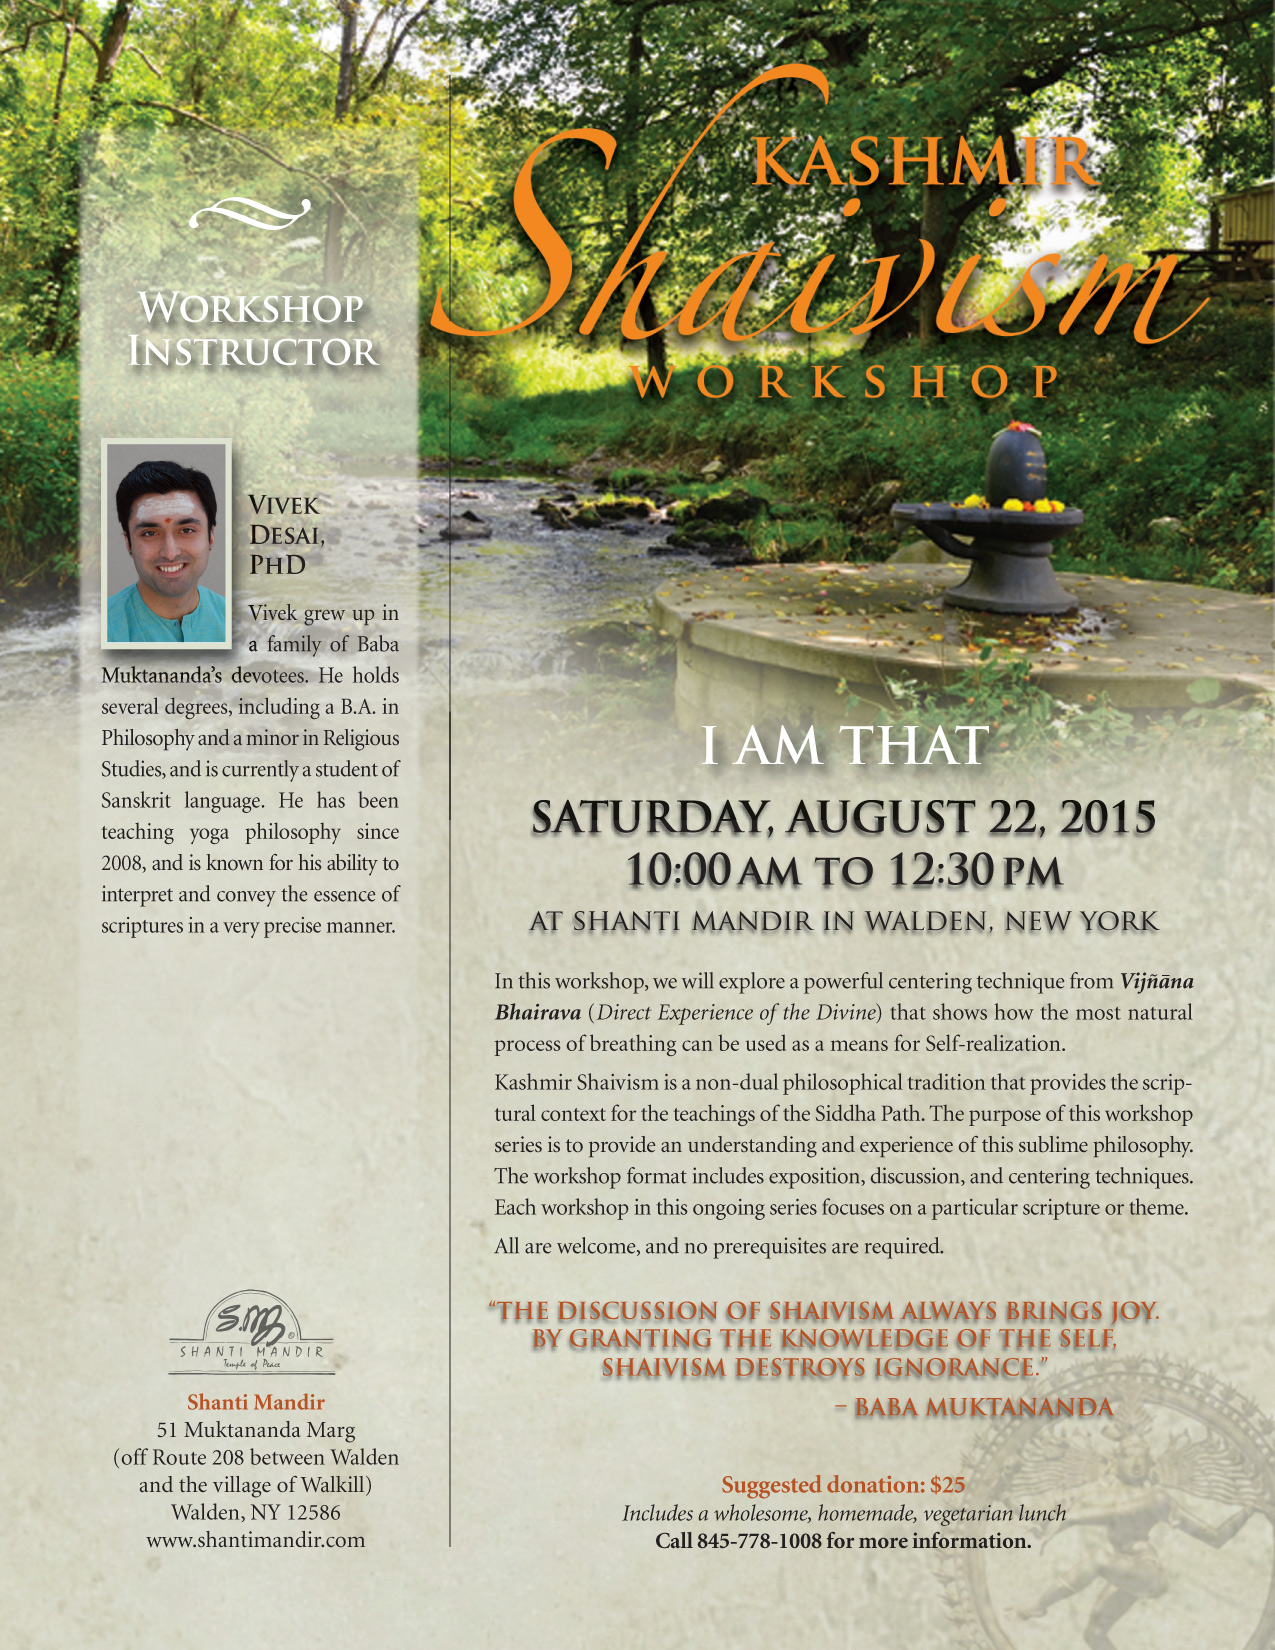 Kashmir Shaivism Workshop Flyer-Aug 2015